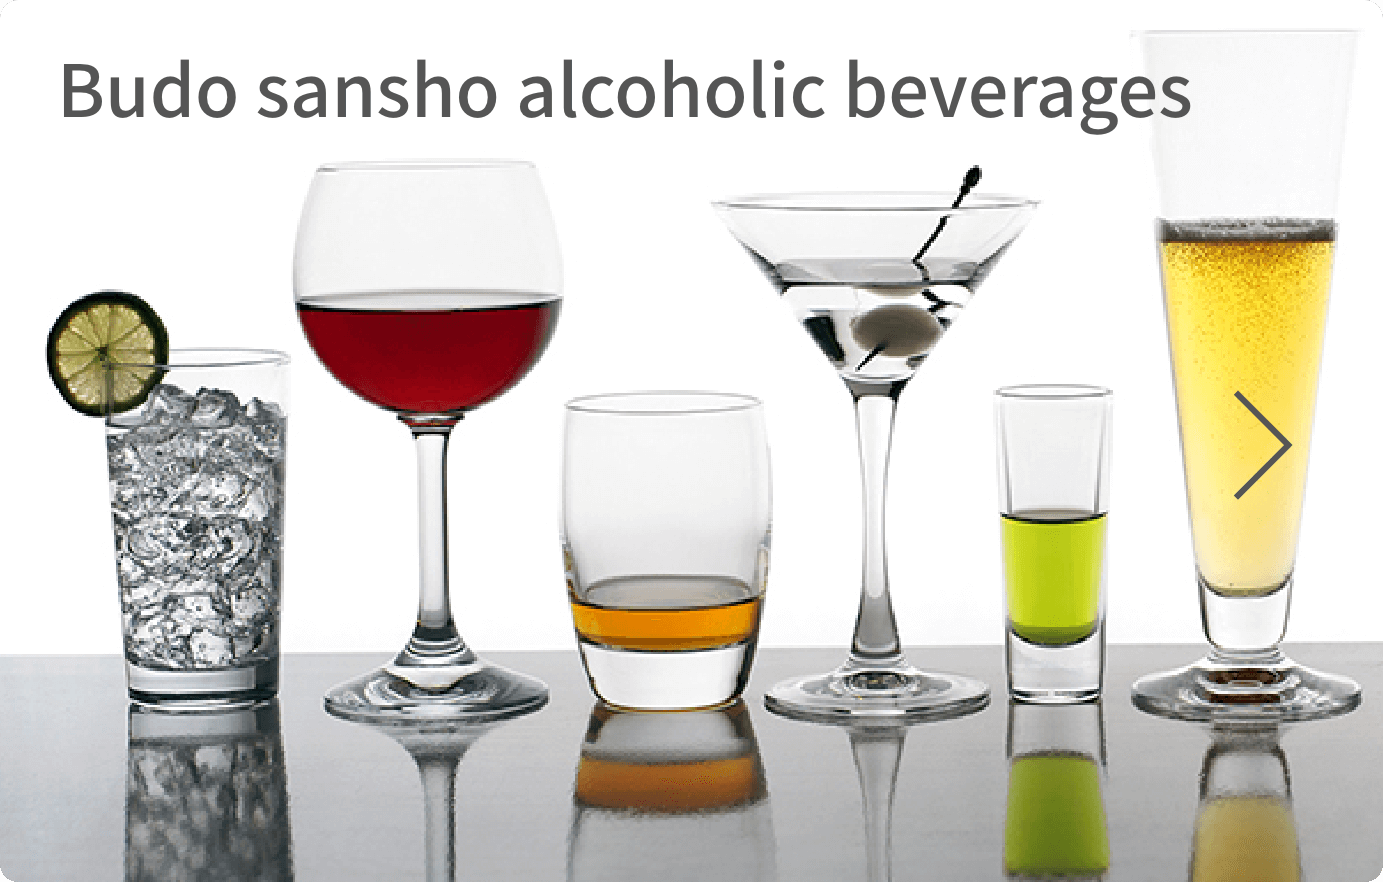 Budo sansho alcoholic beverages